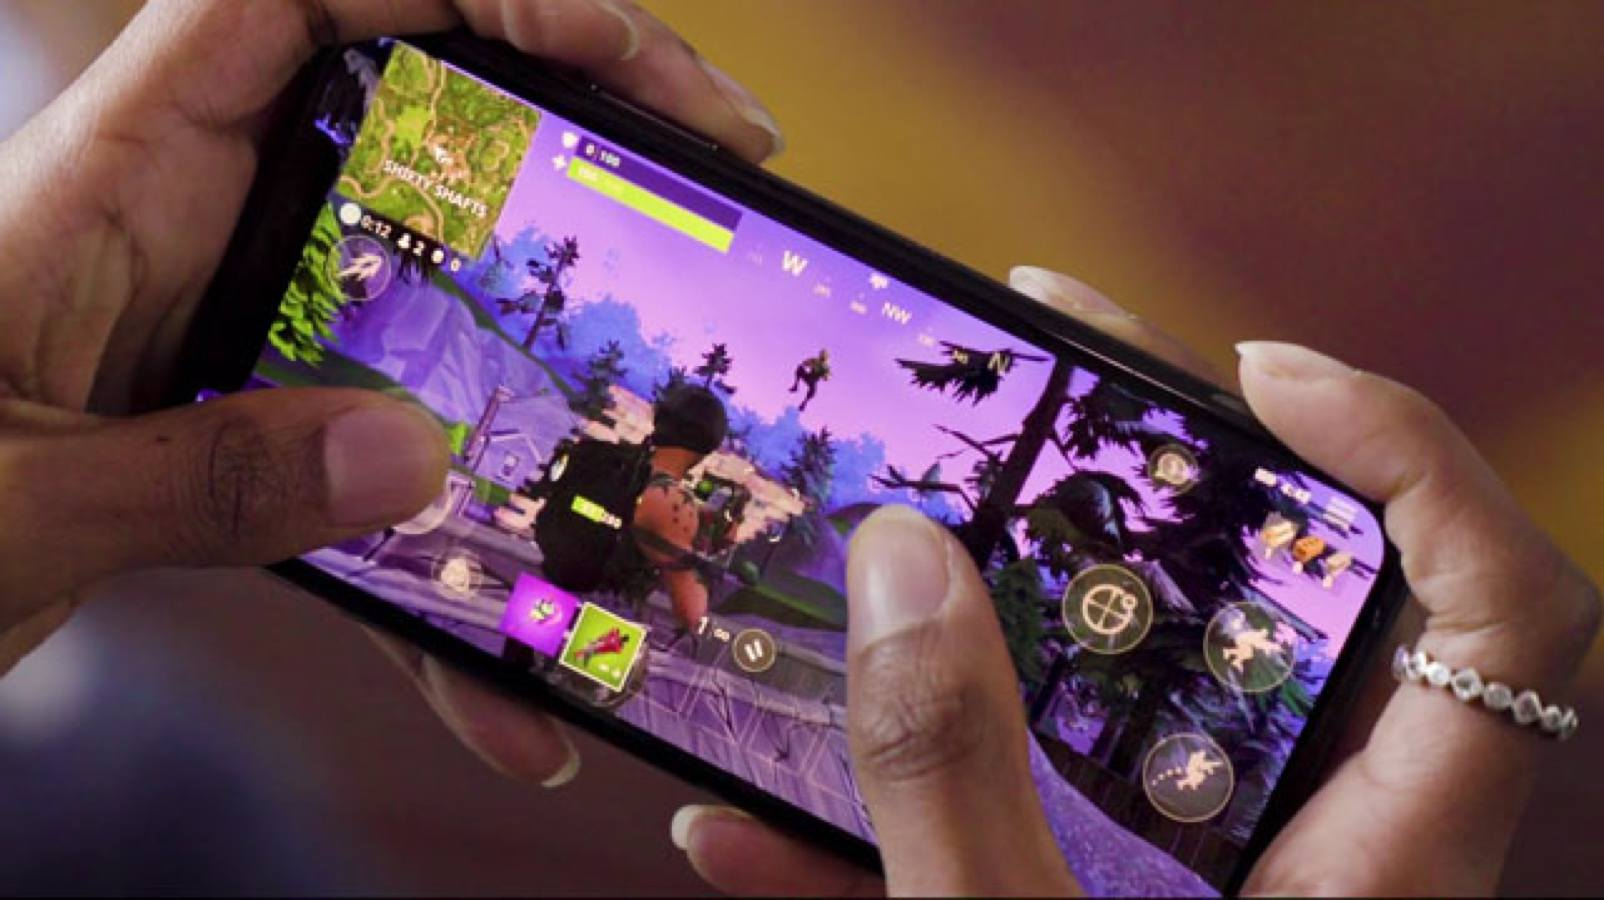 fortnite being played on phone